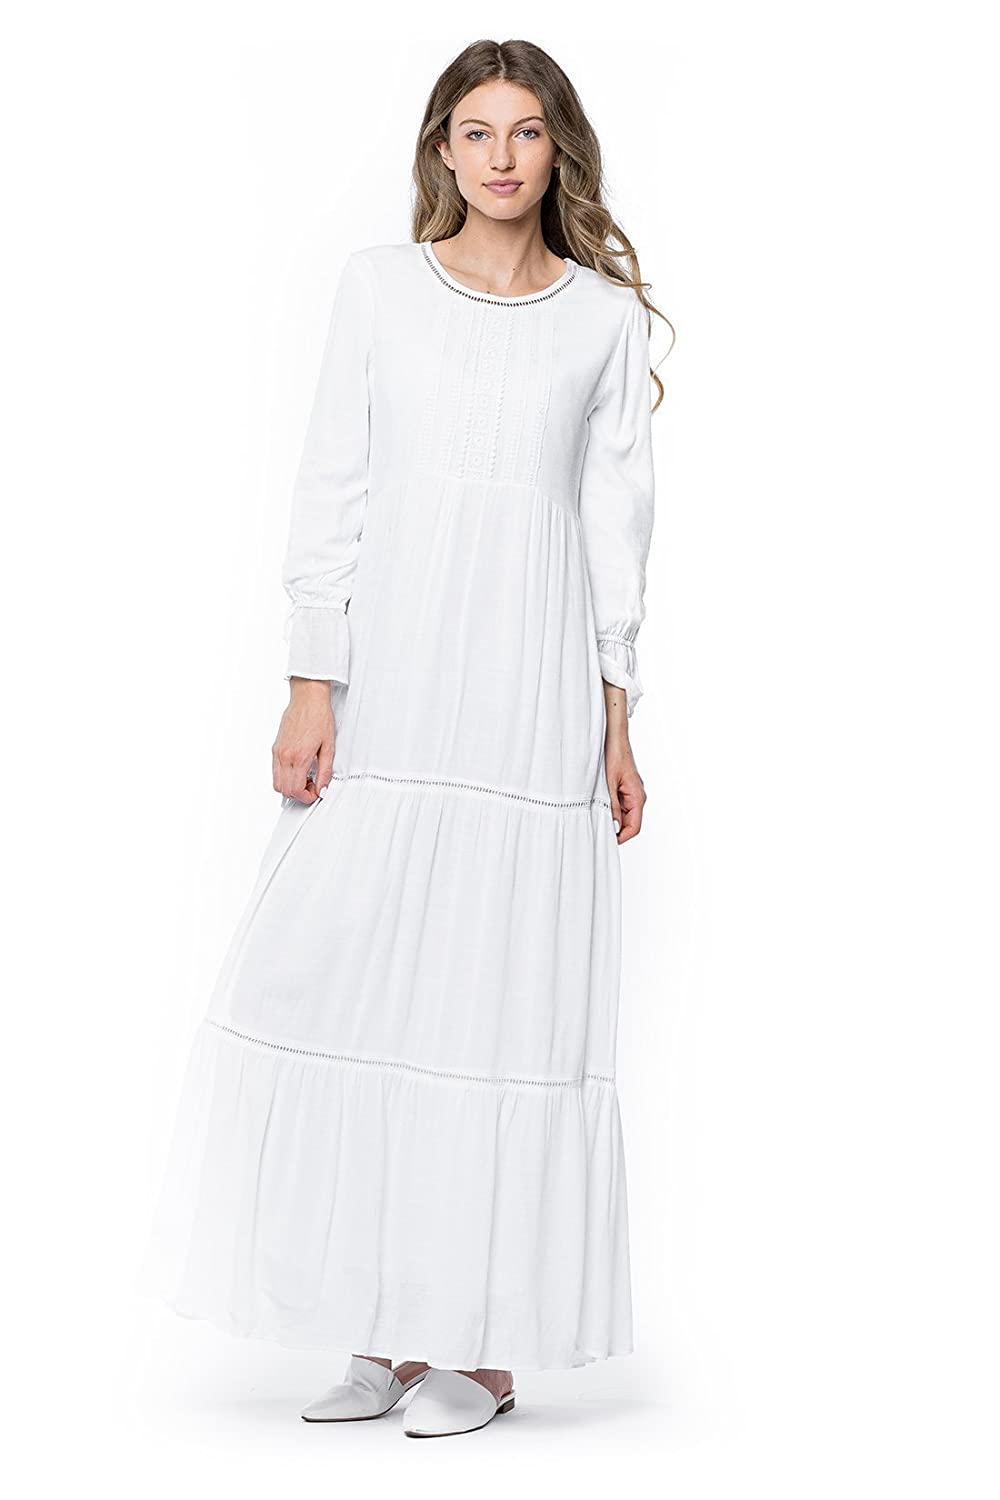 1920s Downton Abbey Dresses ModWhite White Camellia Dress $94.00 AT vintagedancer.com